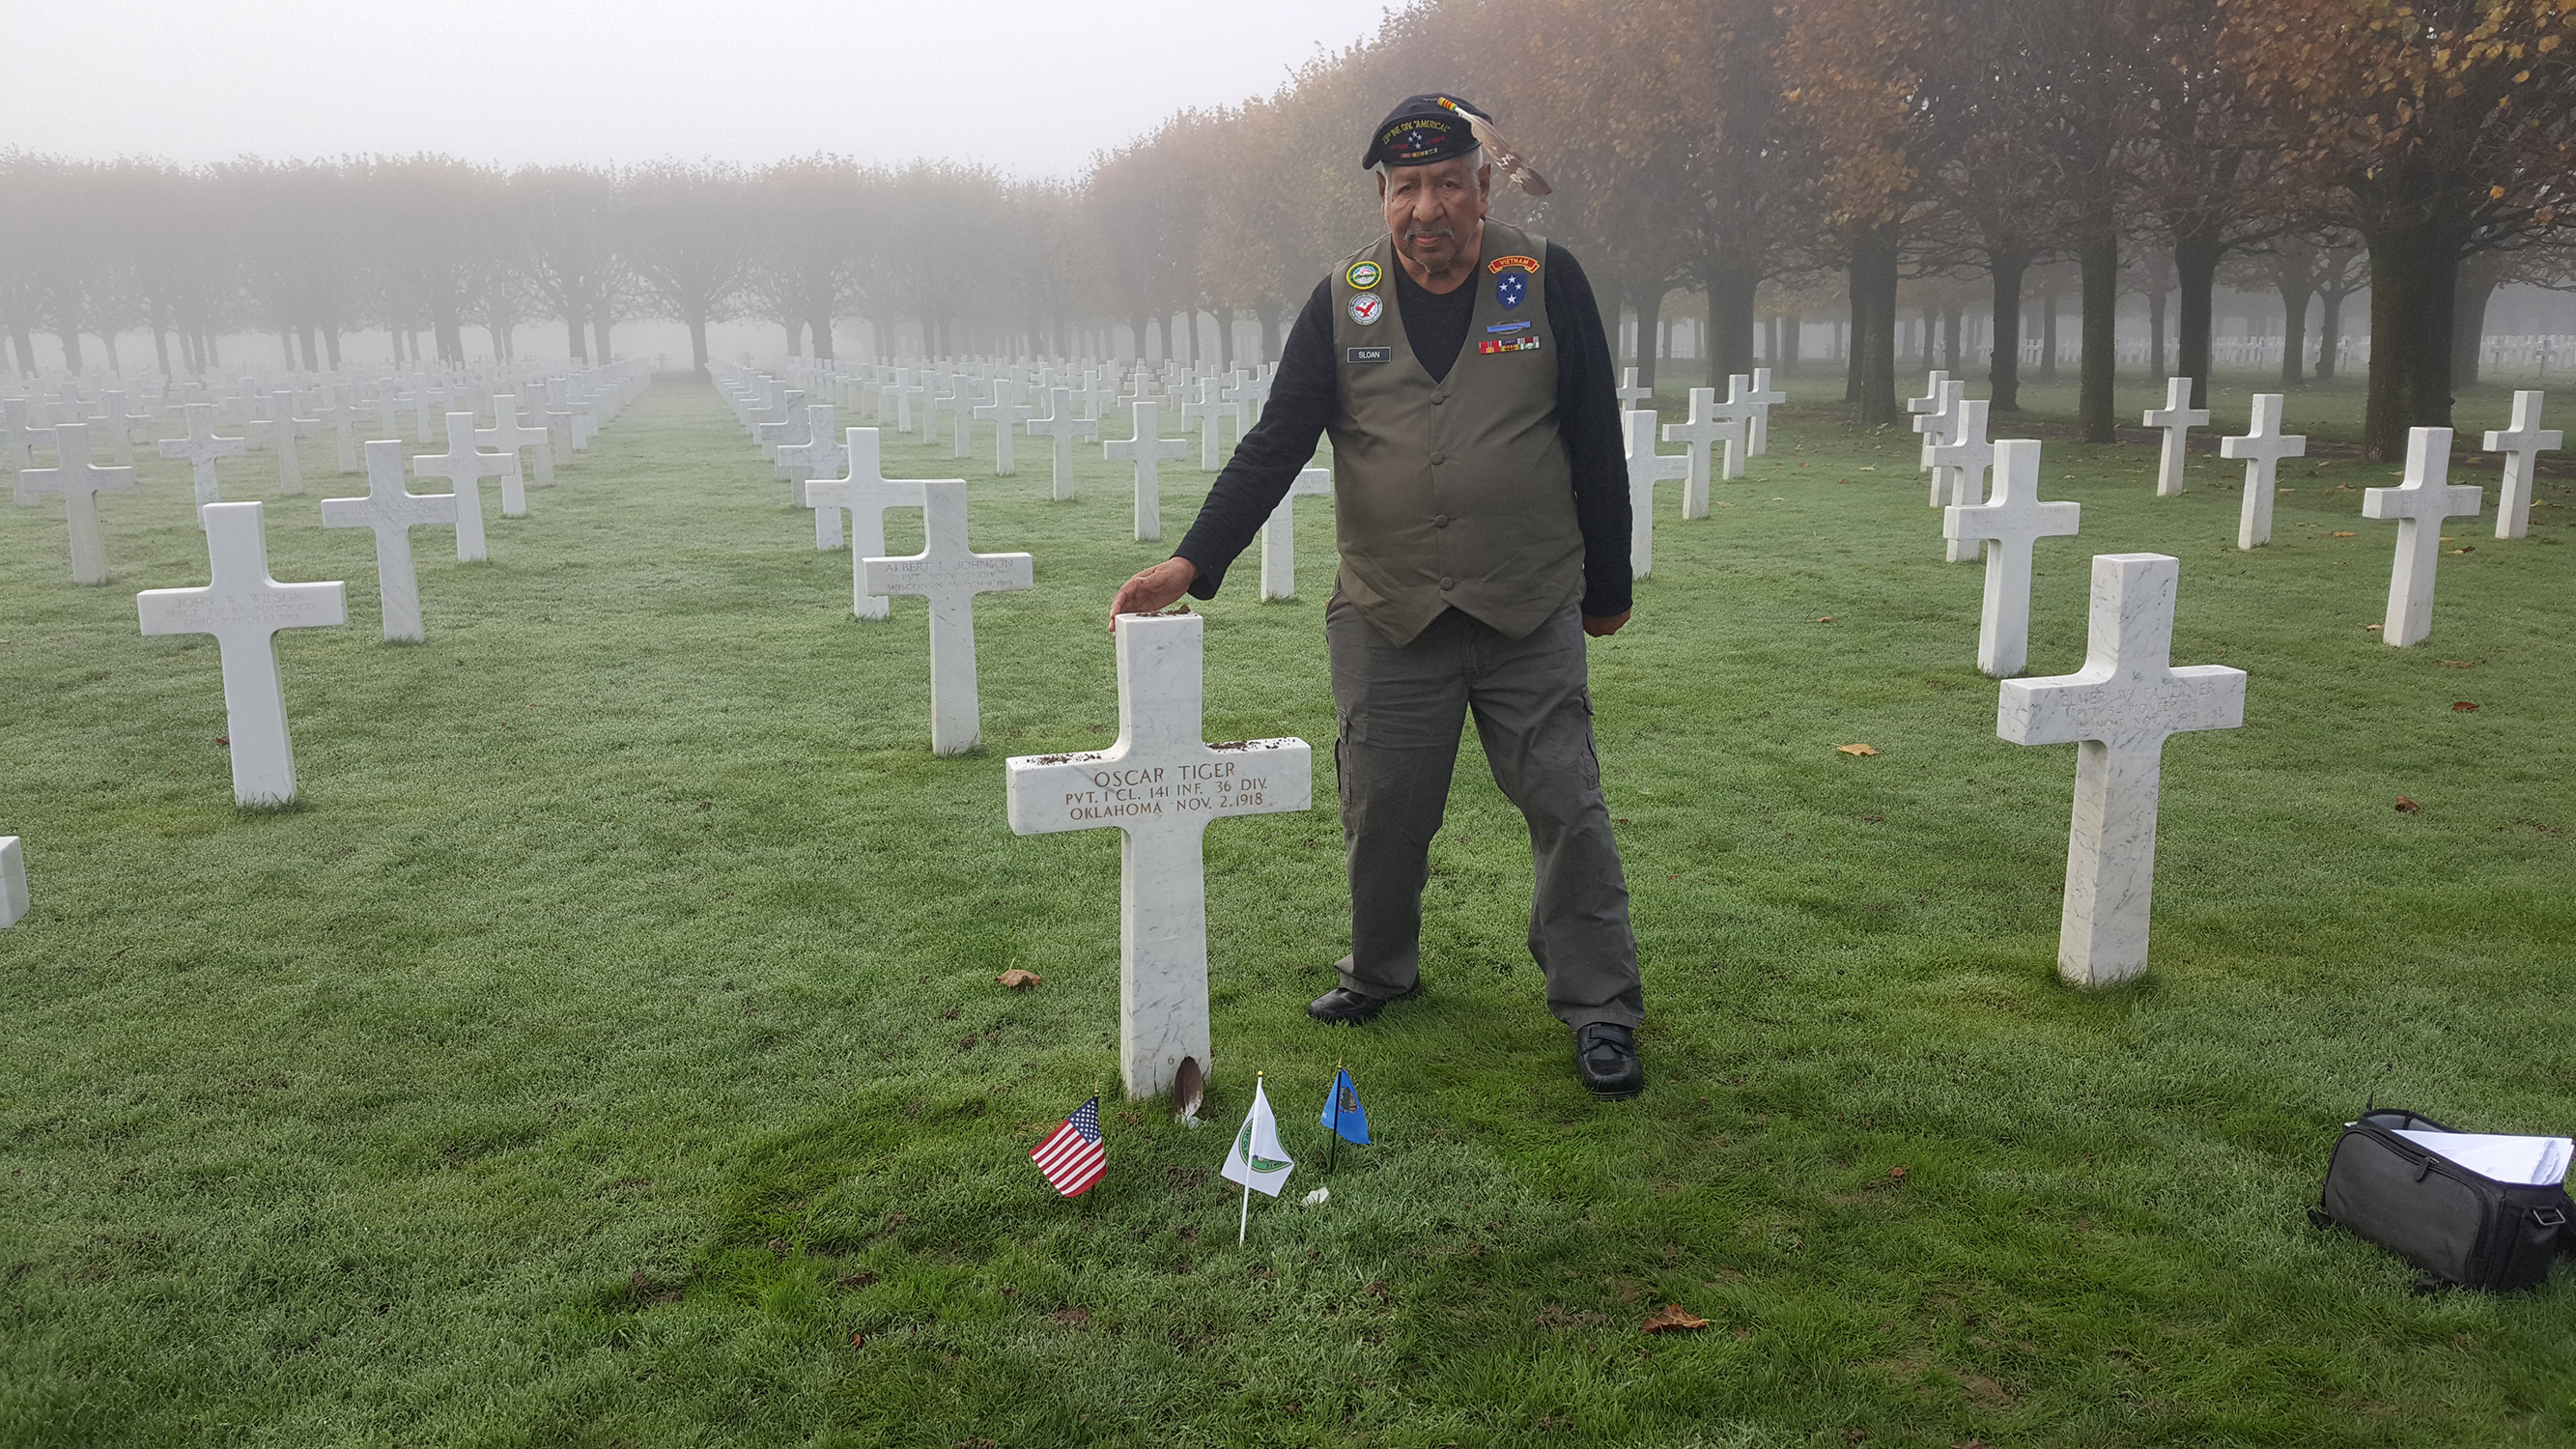 Veteran Reflects on Attendance to Commemorate the 100th Anniversary of the End of World War I